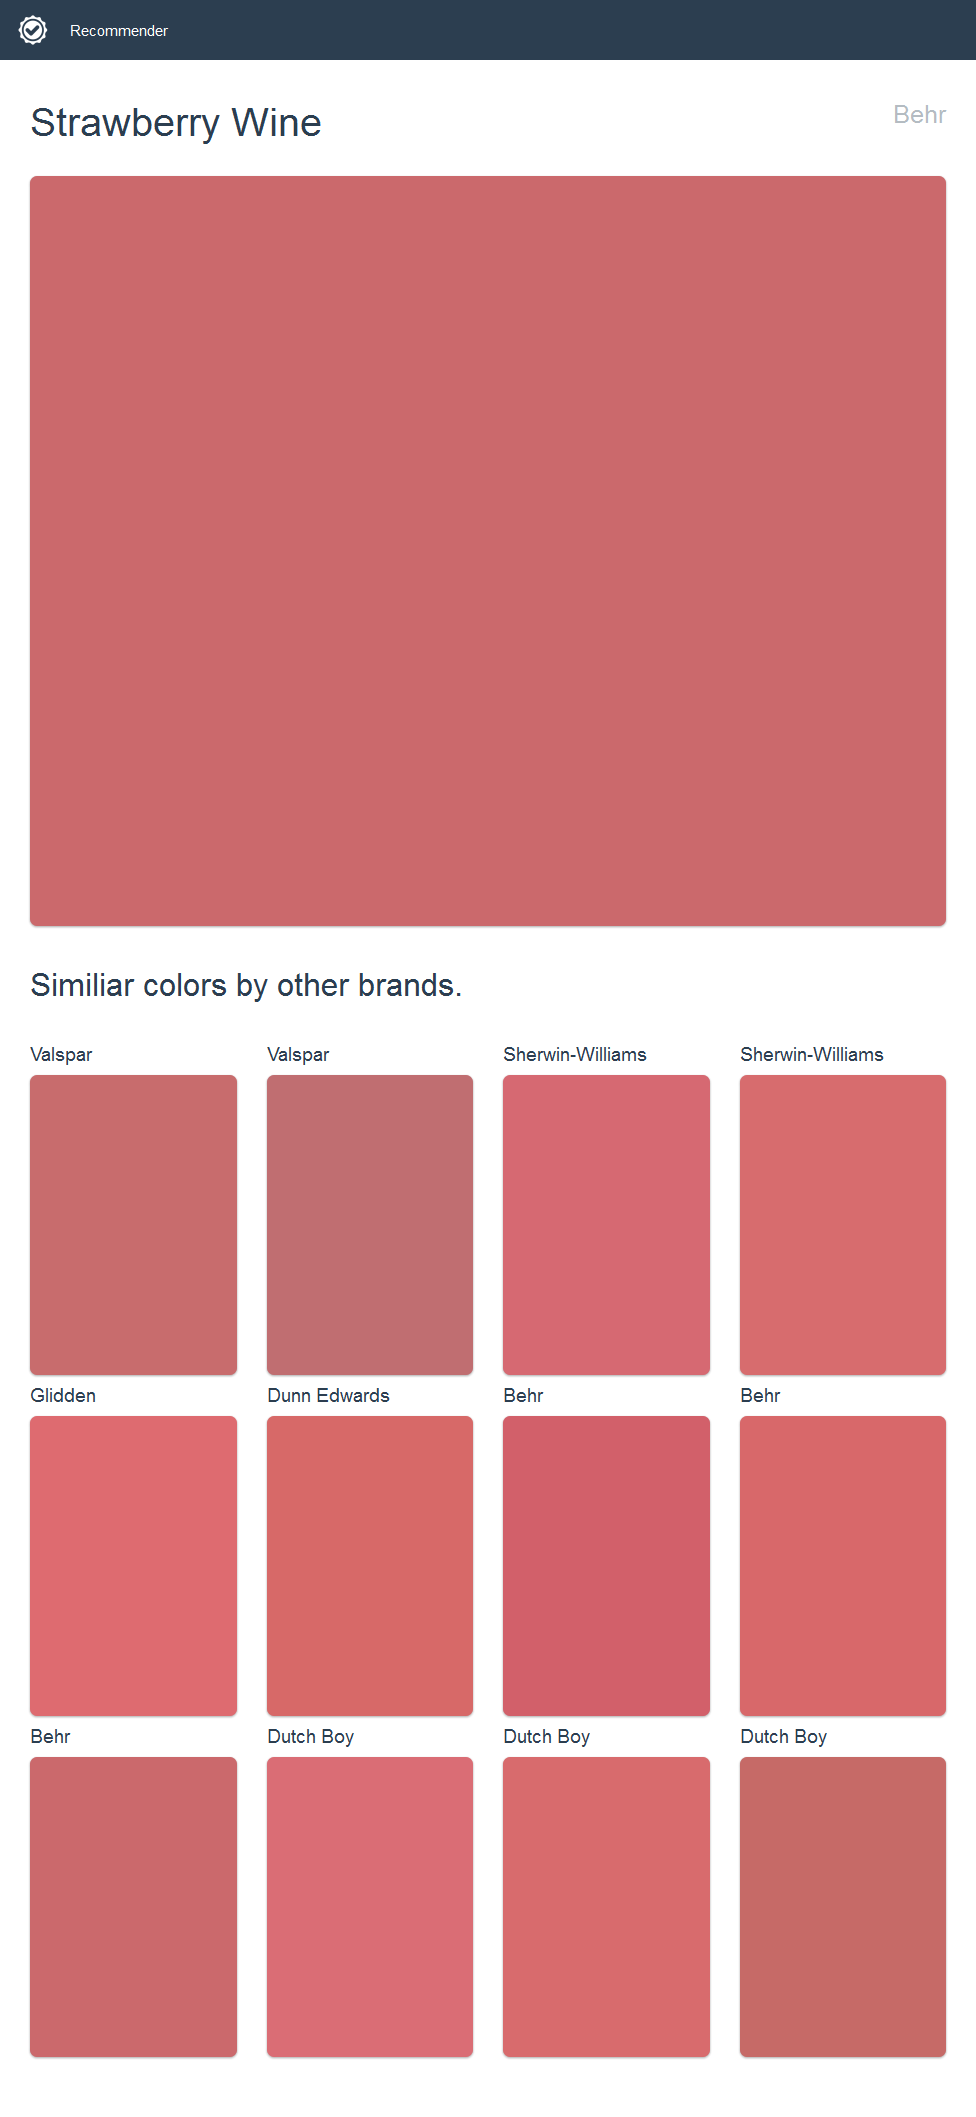 Strawberry Wine, Behr. Click the image to see similiar colors by ...